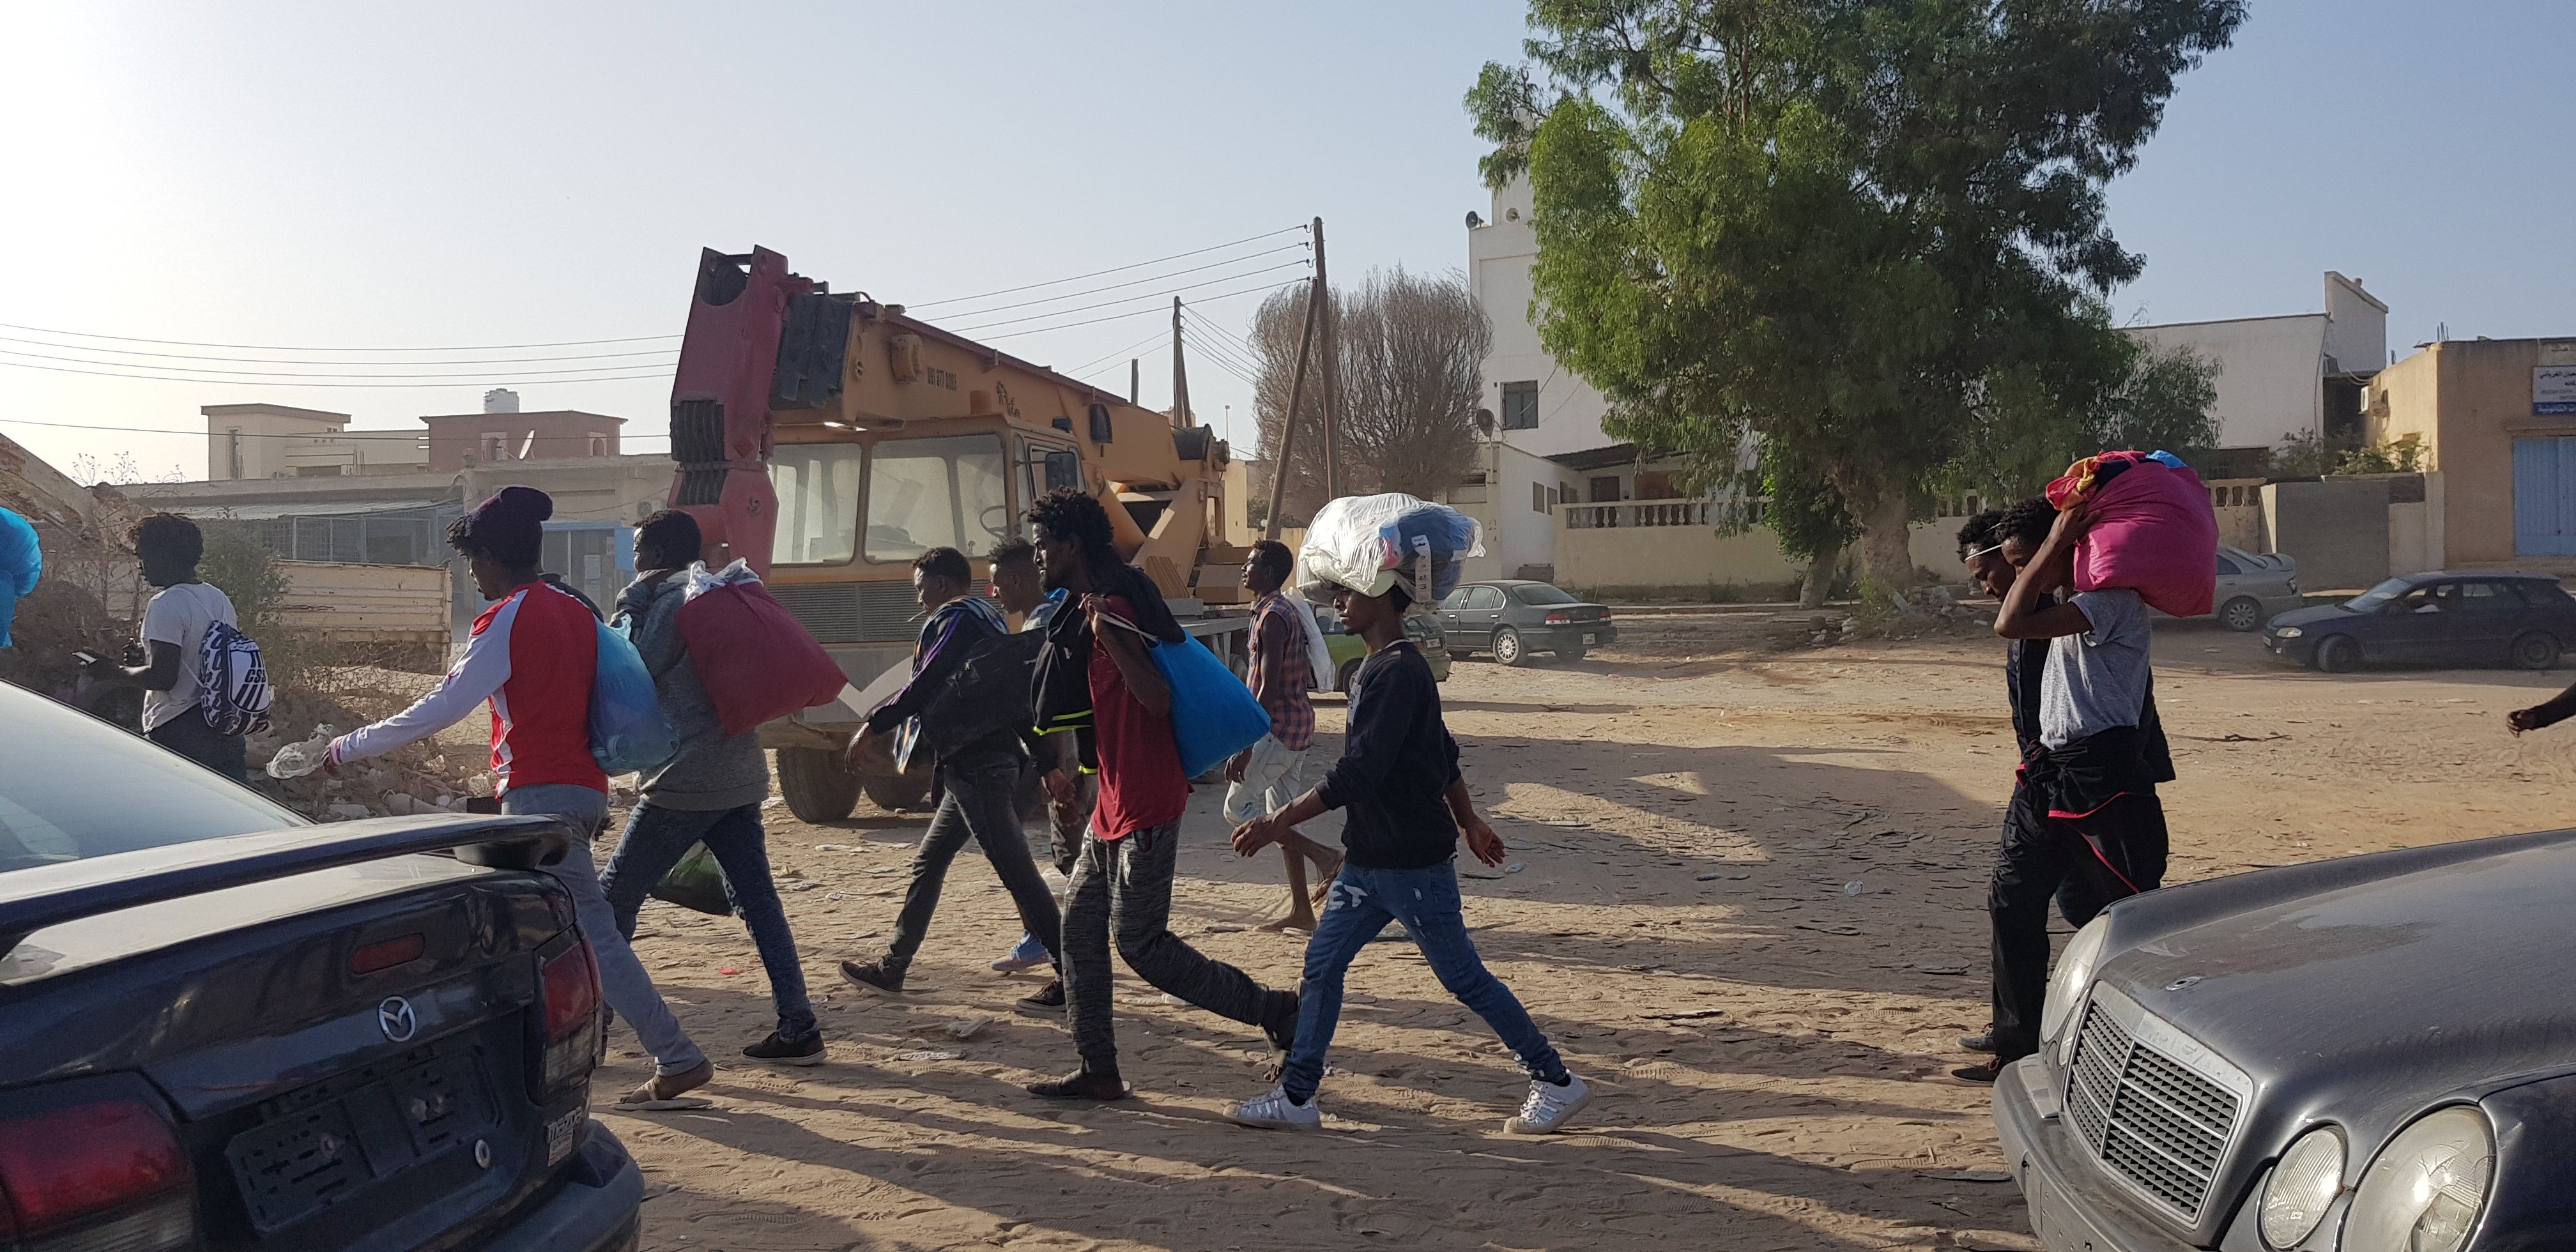 Migrants march towards the offices of international organizations to demand help traveling to Europe after Libyan police agreed to meet their demand for release from the bombed-out facility, in Tripoli, Libya, July 9, 2019. (H.Murdock/VOA)